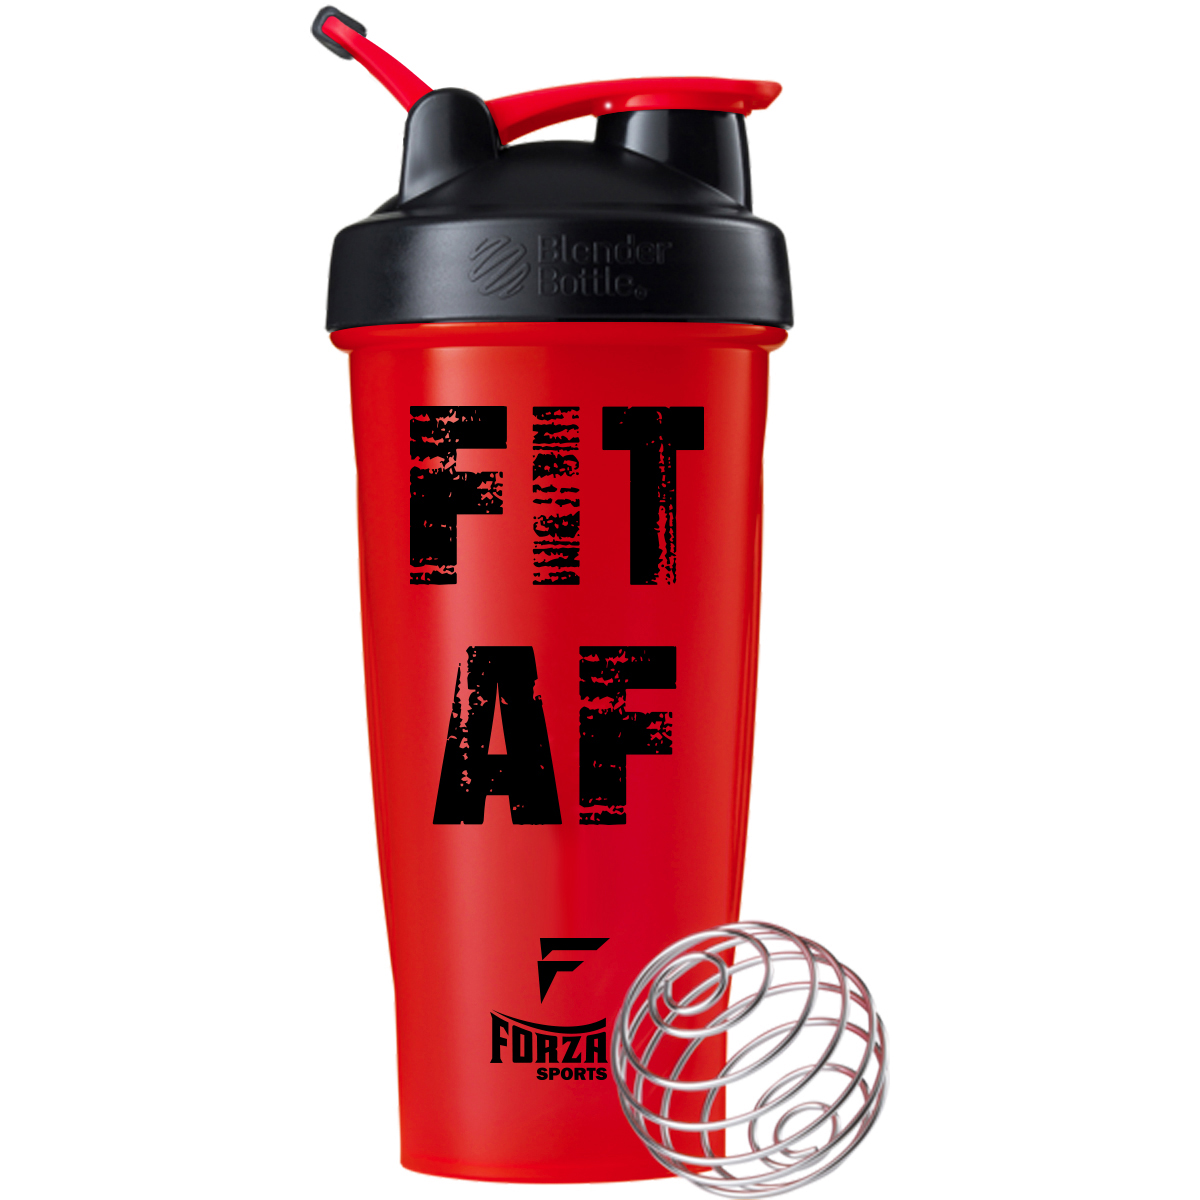 Blender-Bottle-x-Forza-Sports-Classic-28-oz-Shaker-Mixer-Cup-with-Loop-Top thumbnail 22